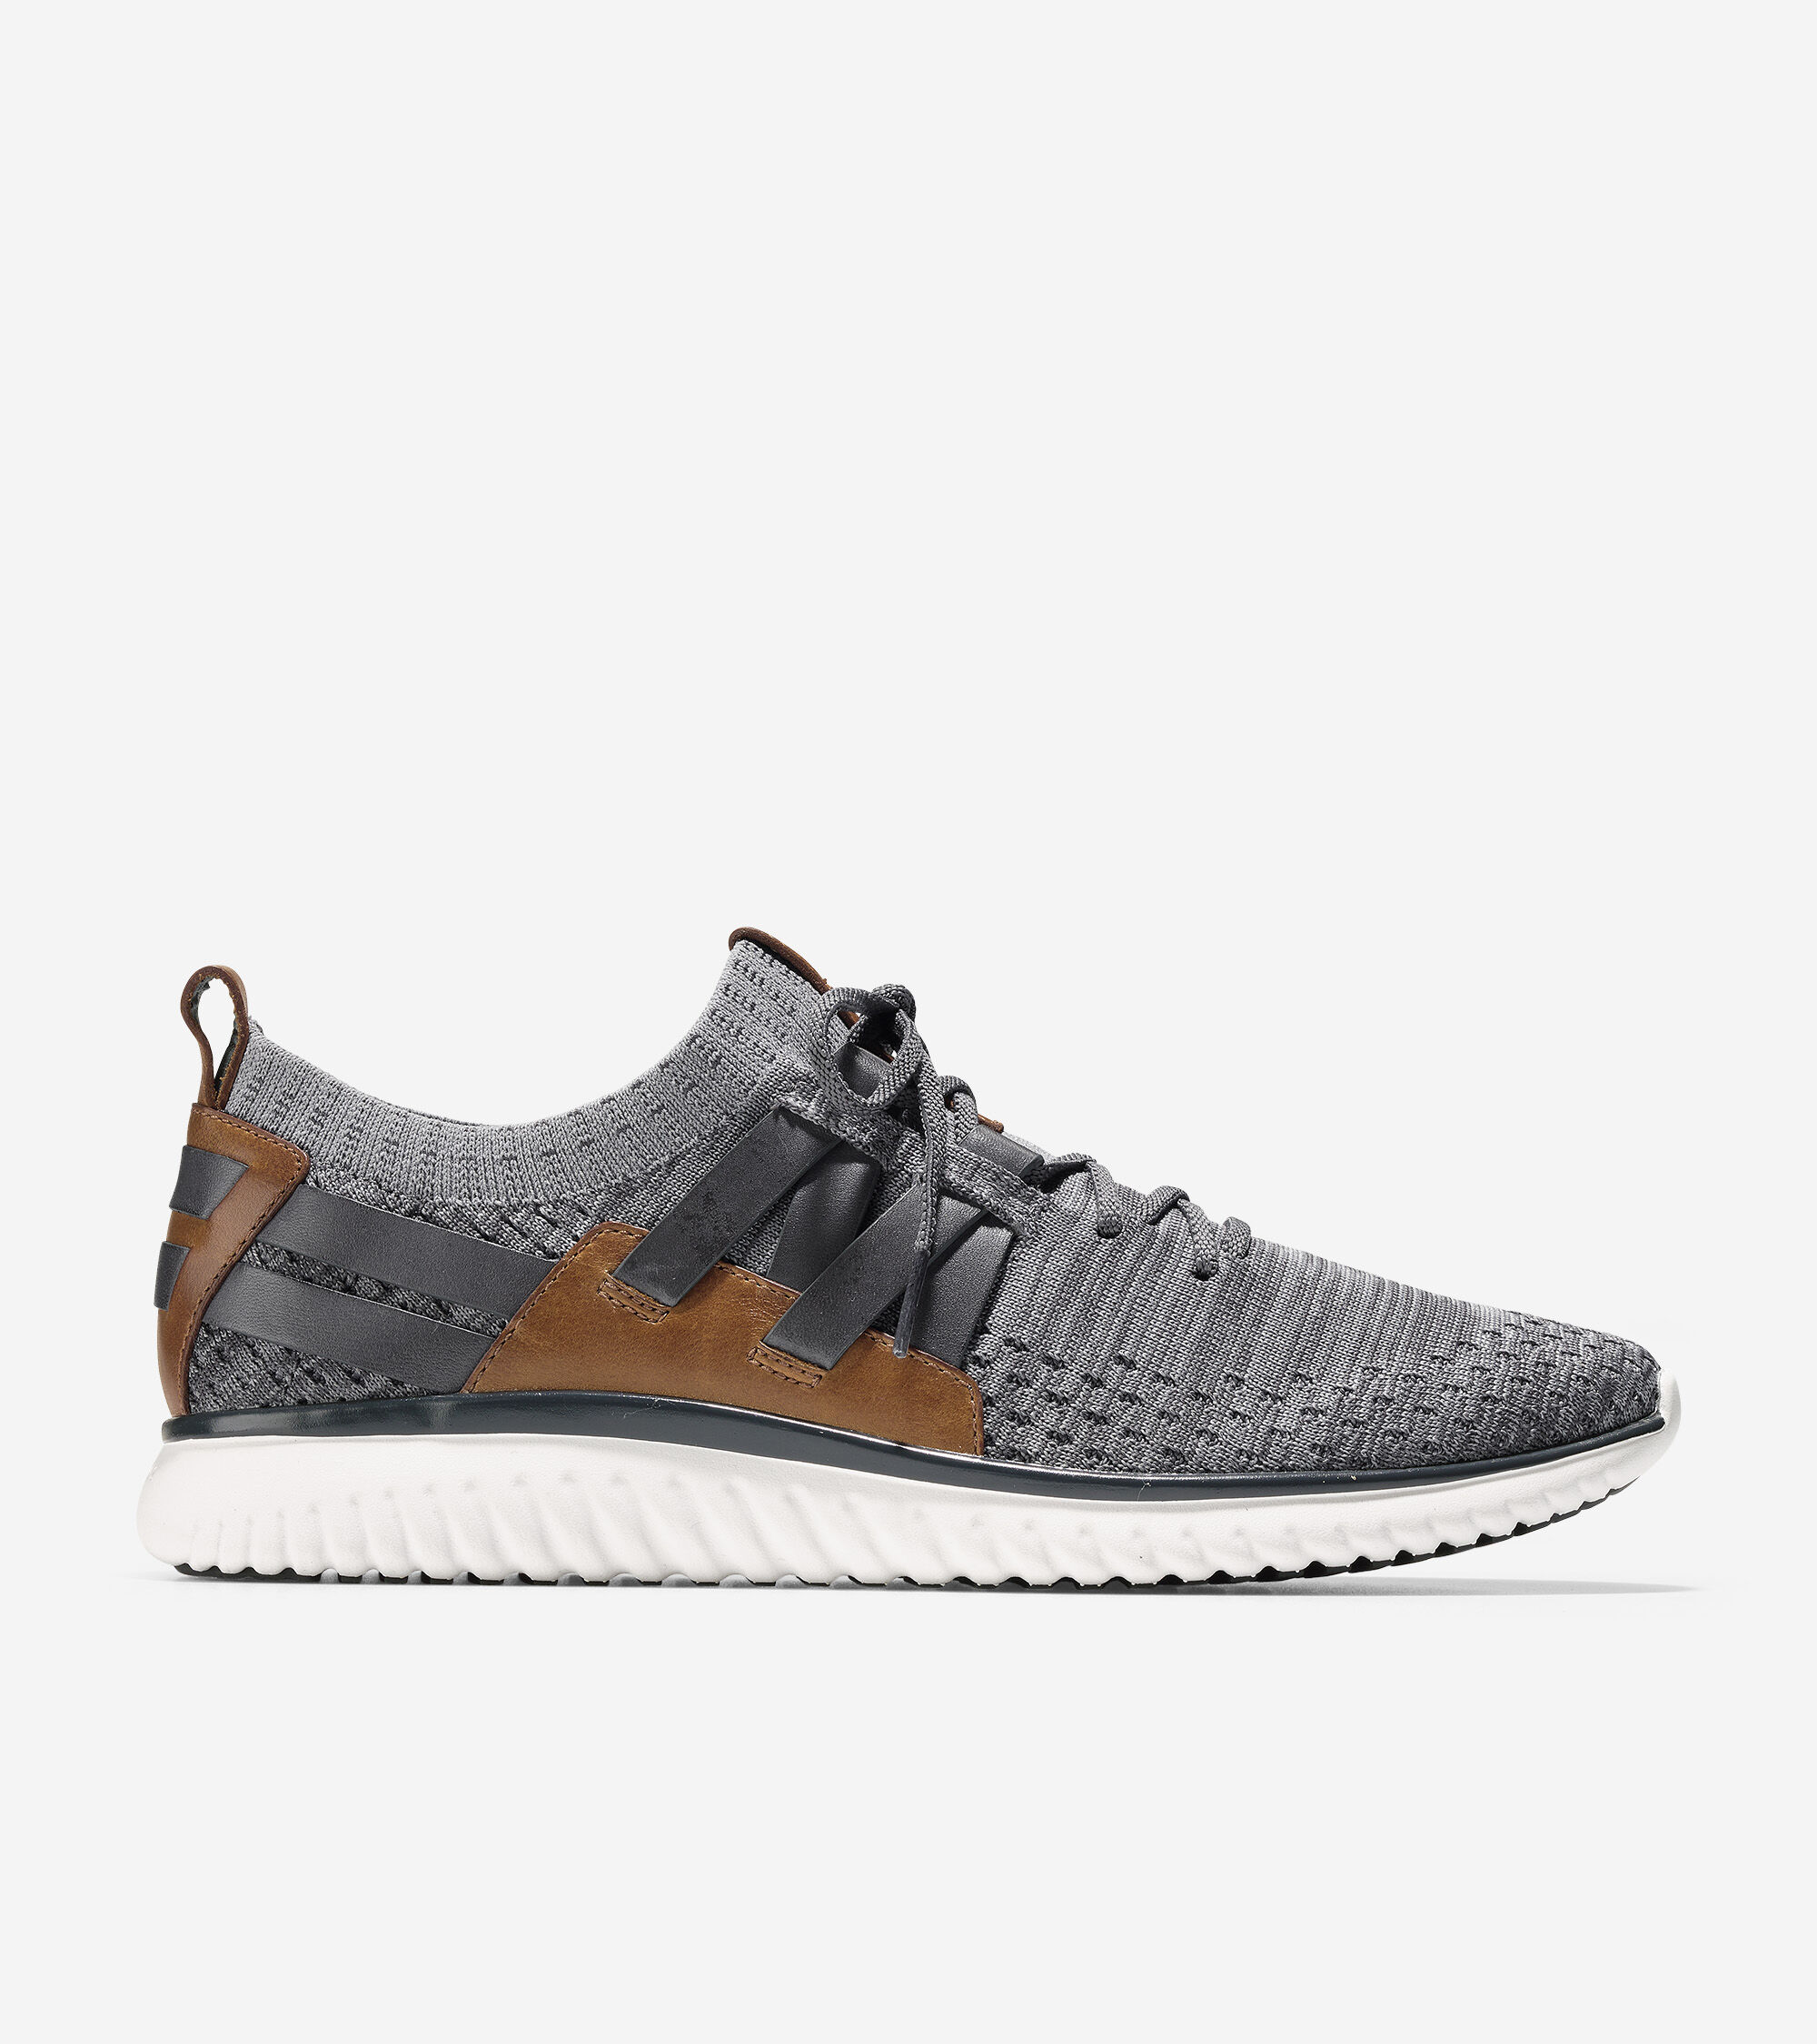 Men's GrandMotion Stitchlite Woven Sneakers in Magnet-Ironstone | Cole Haan